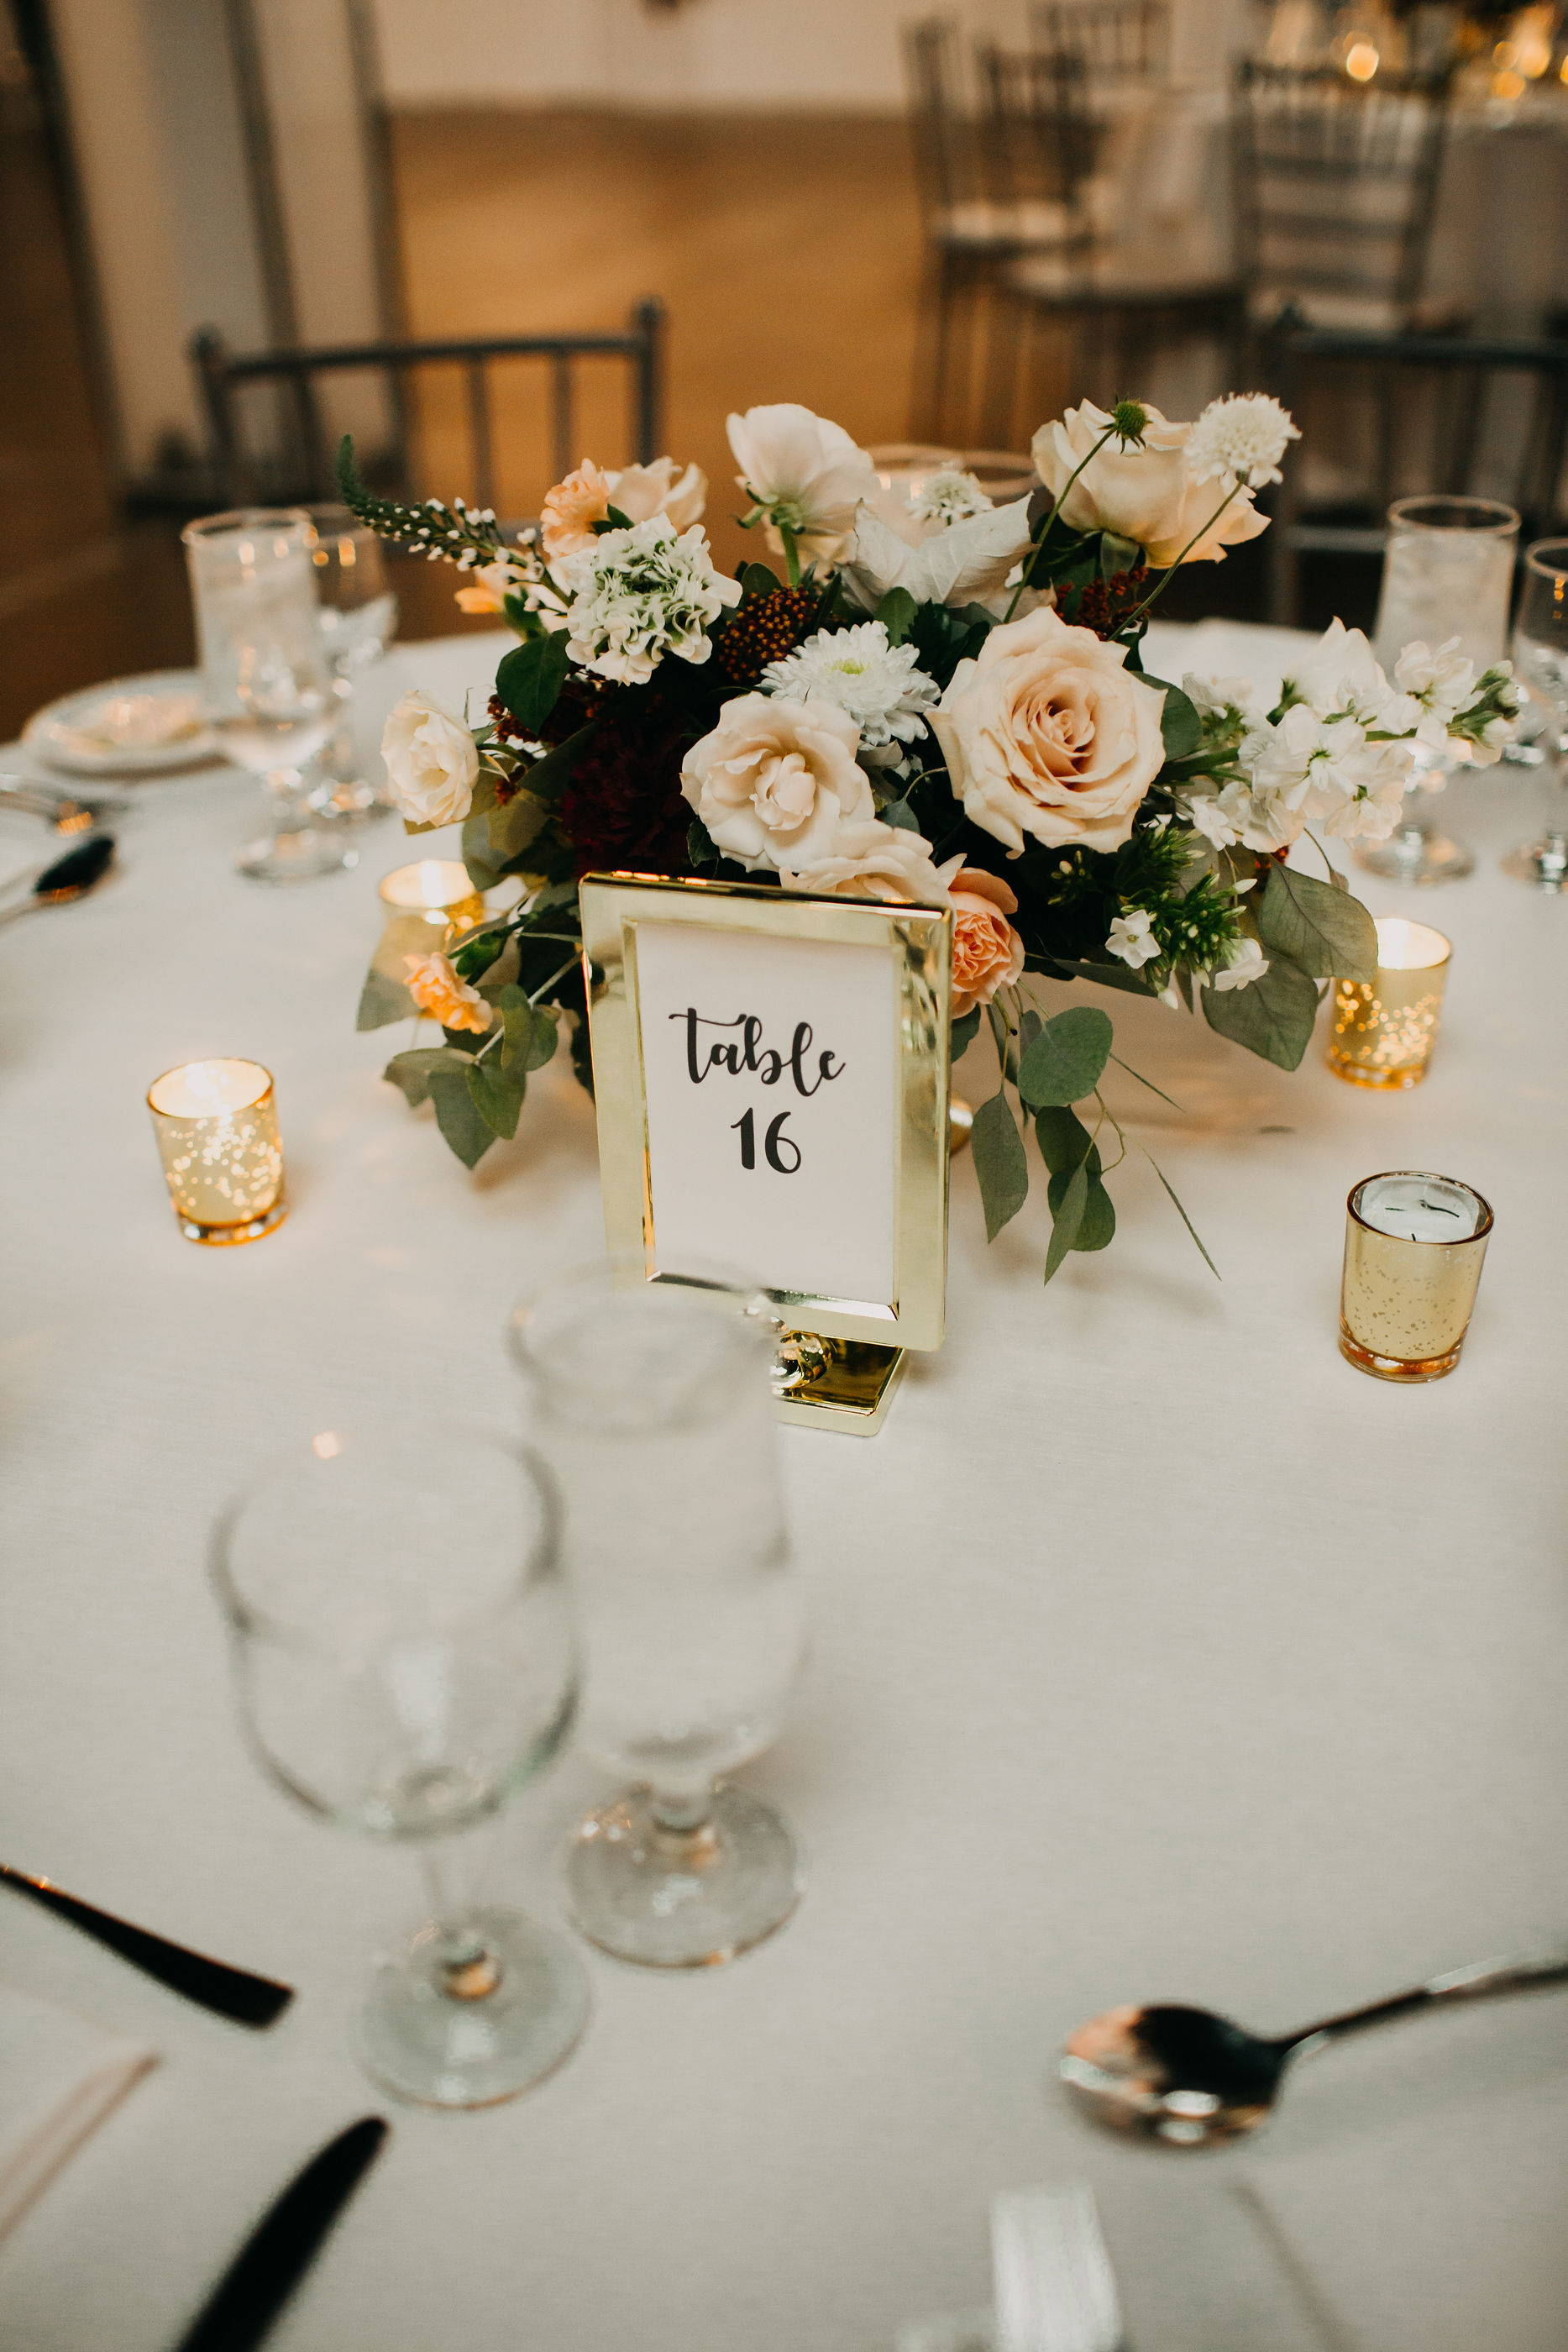 Centerpiece at The Warehouse wedding in Toronto from florist May Flowers